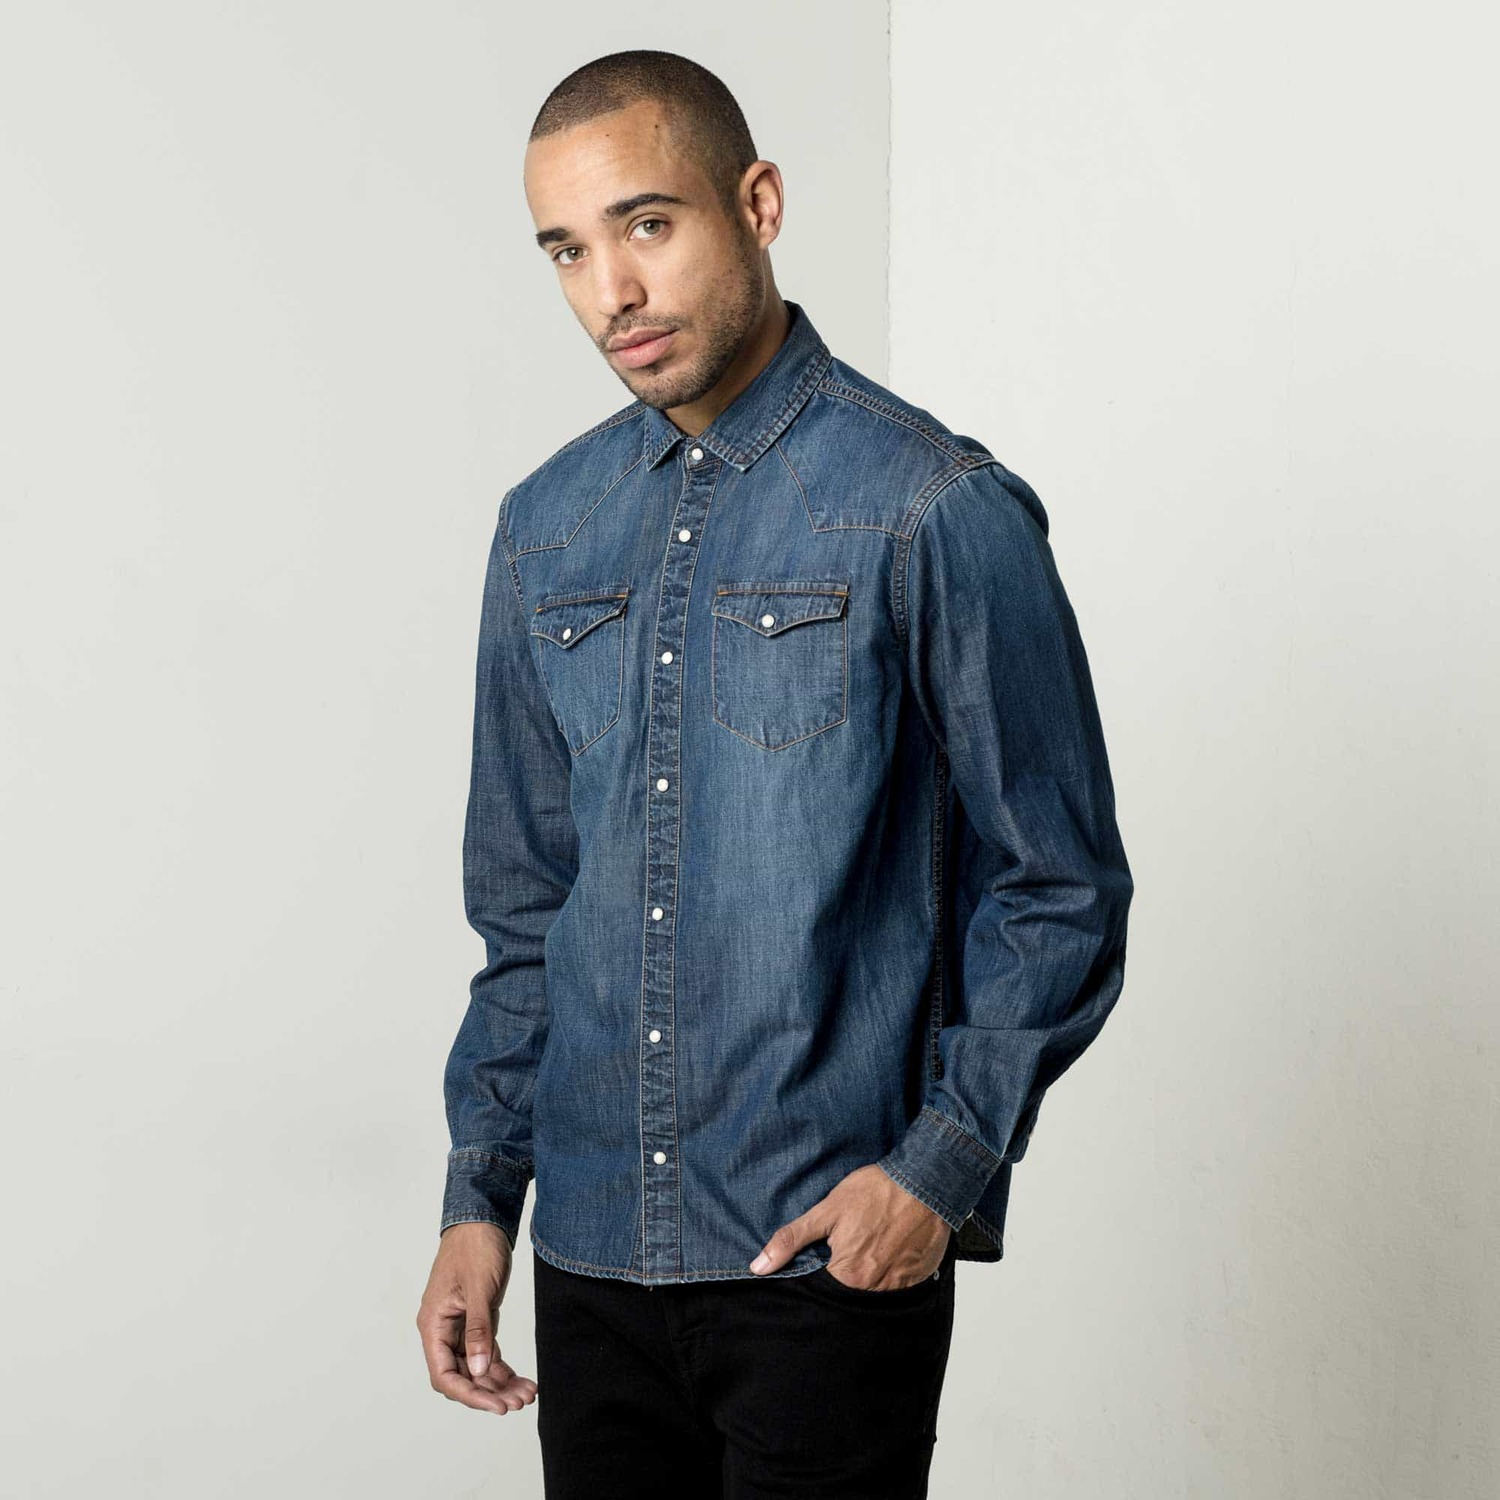 Mens snap button down denim shirt in dark vintage 75 dstld for Mens shirts with snaps instead of buttons